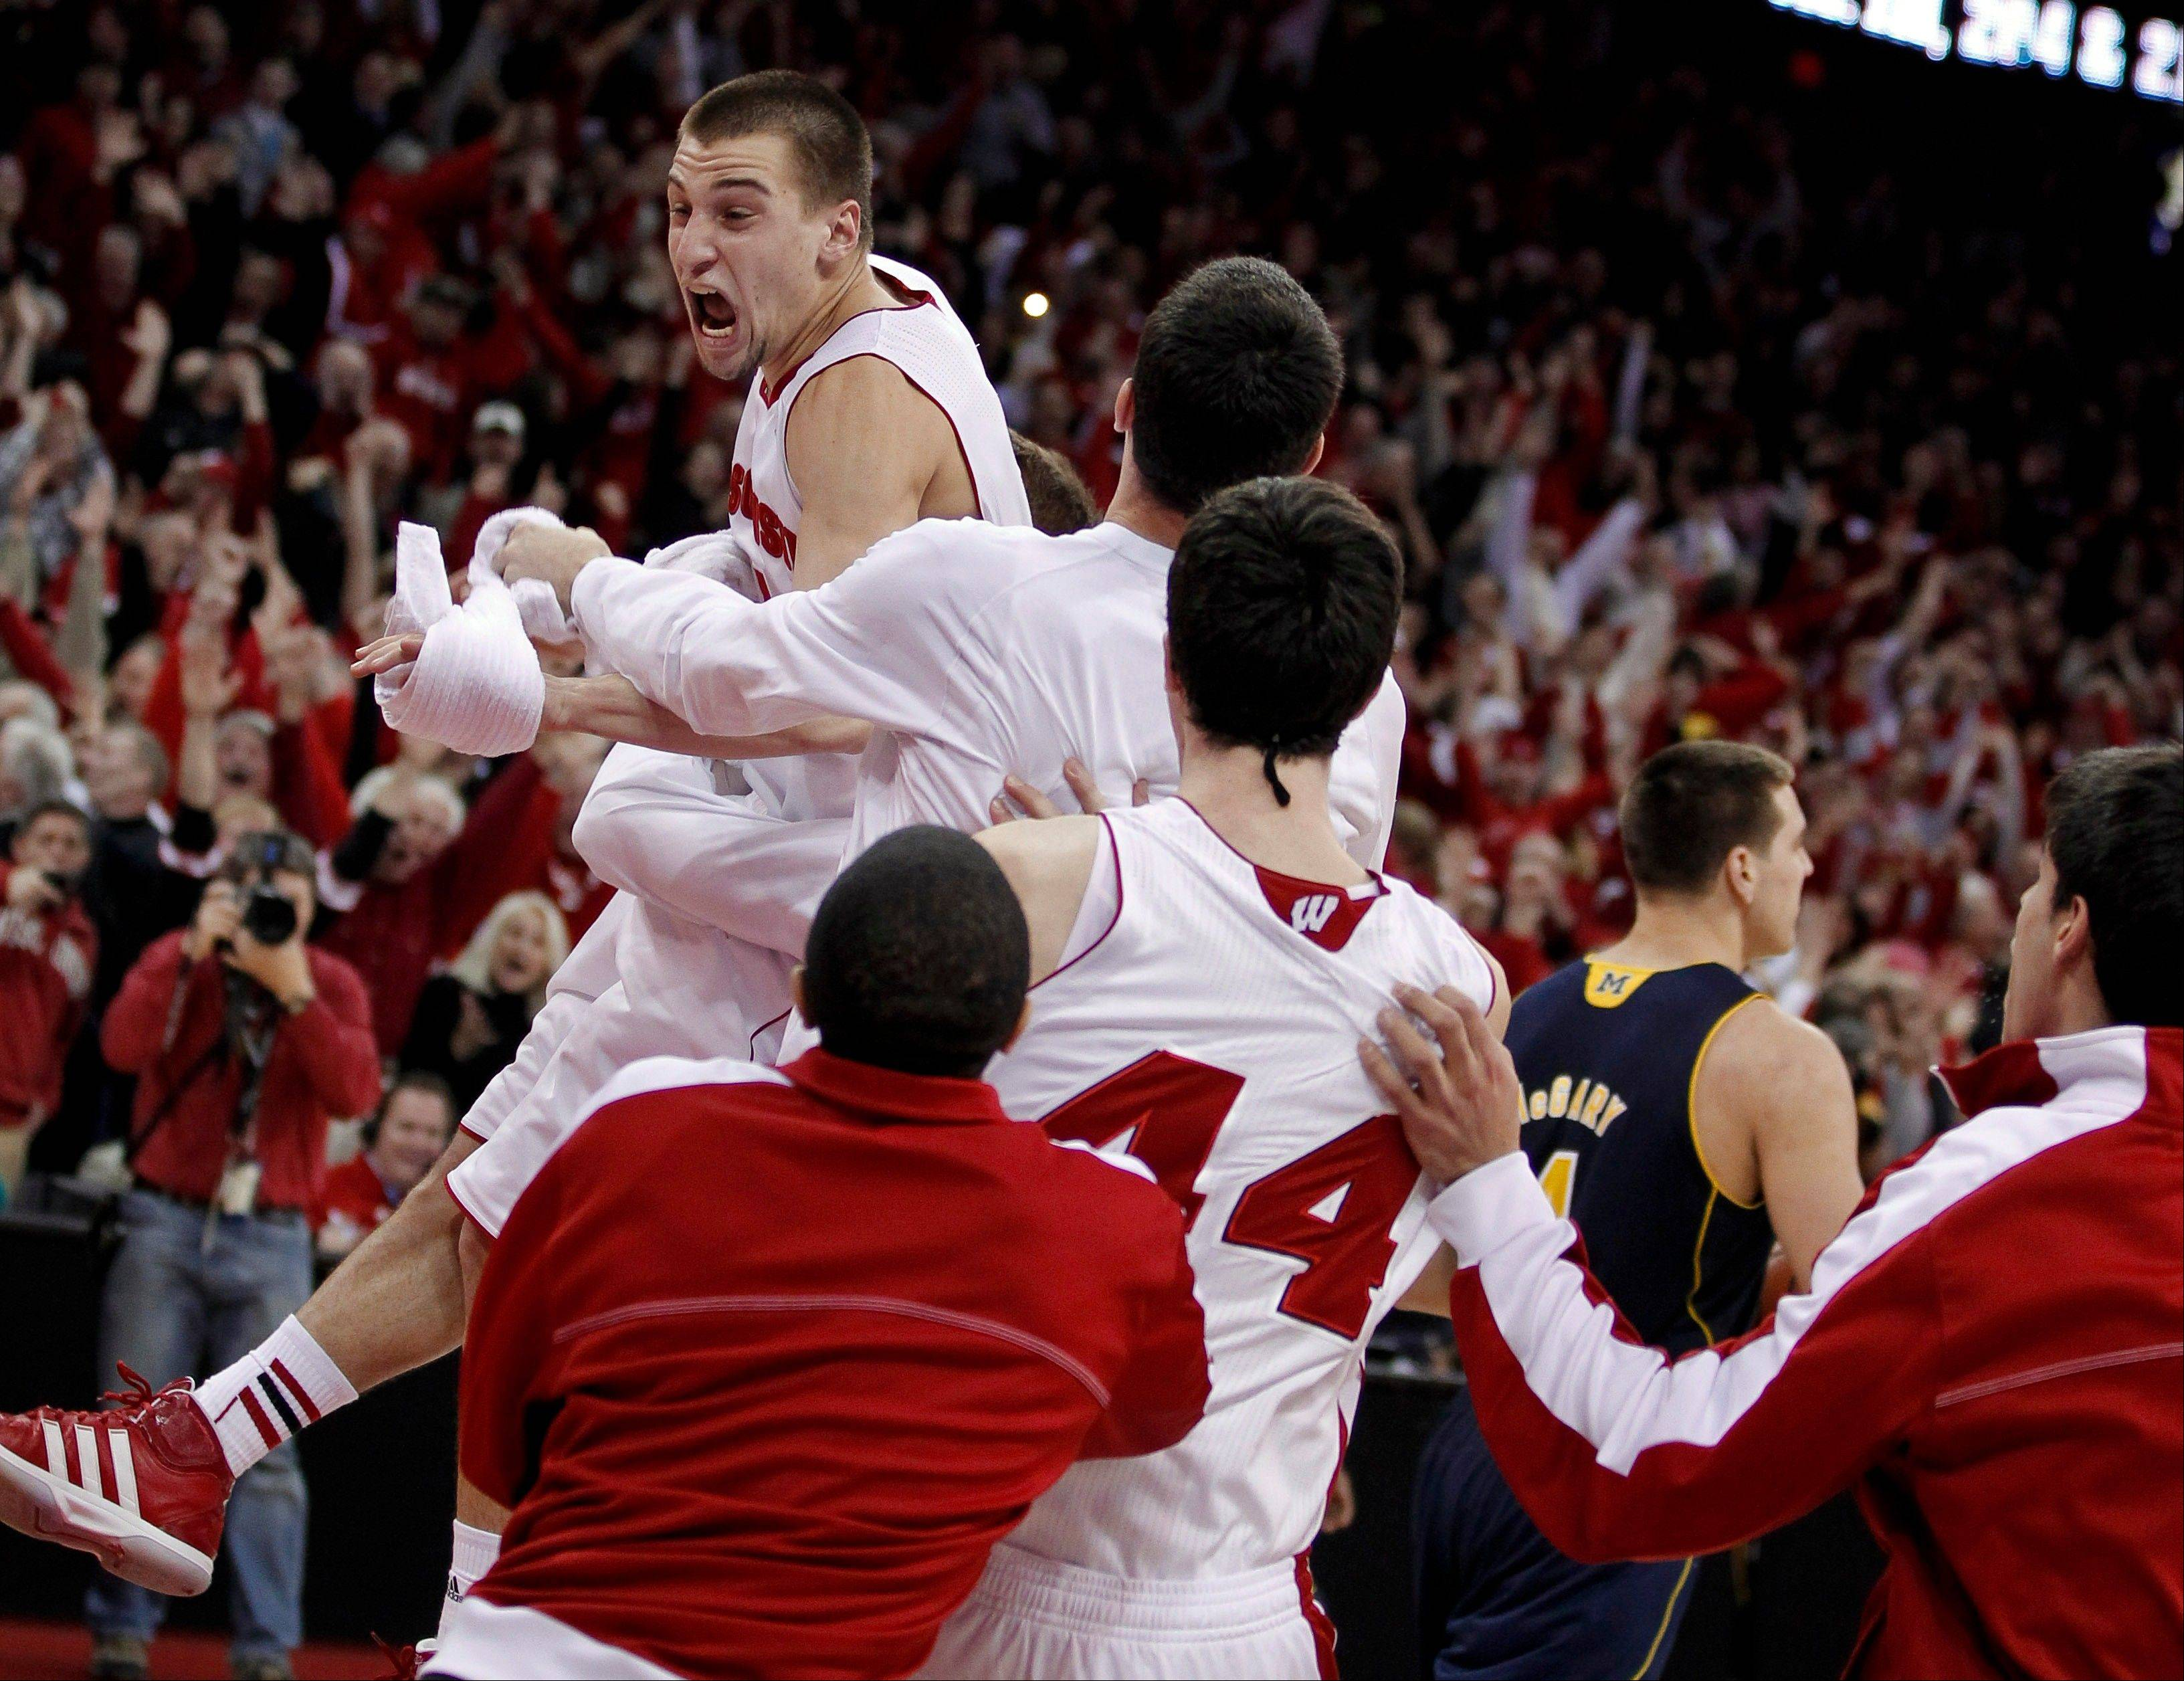 Mundelein native and Wisconsin player Ben Brust, top, celebrates after hitting a 3-point shot in the final second of regulation against Michigan in an NCAA college basketball game Saturday, Feb. 9, 2013, in Madison, Wis. Wisconsin defeated Michigan 65-62 in overtime. (AP Photo/Andy Manis)